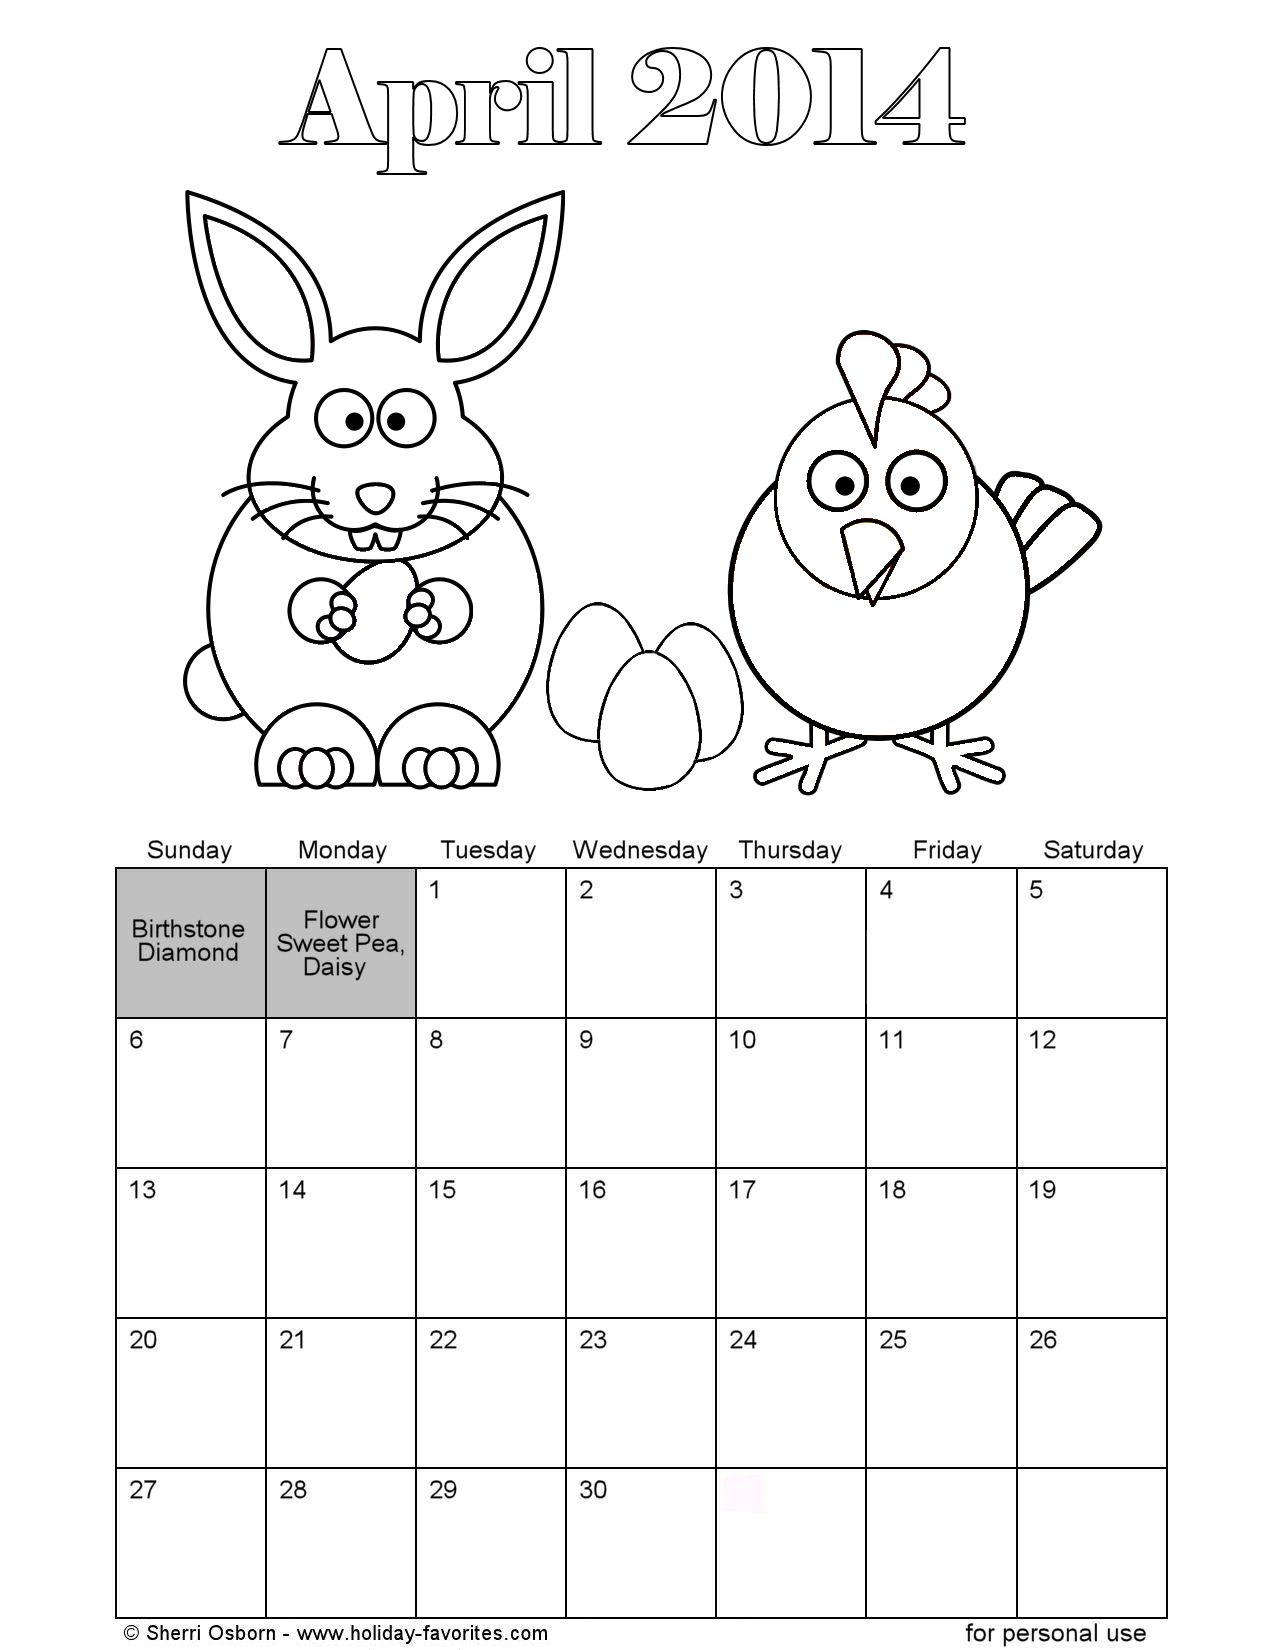 printable april 2014 calendars holiday favorites